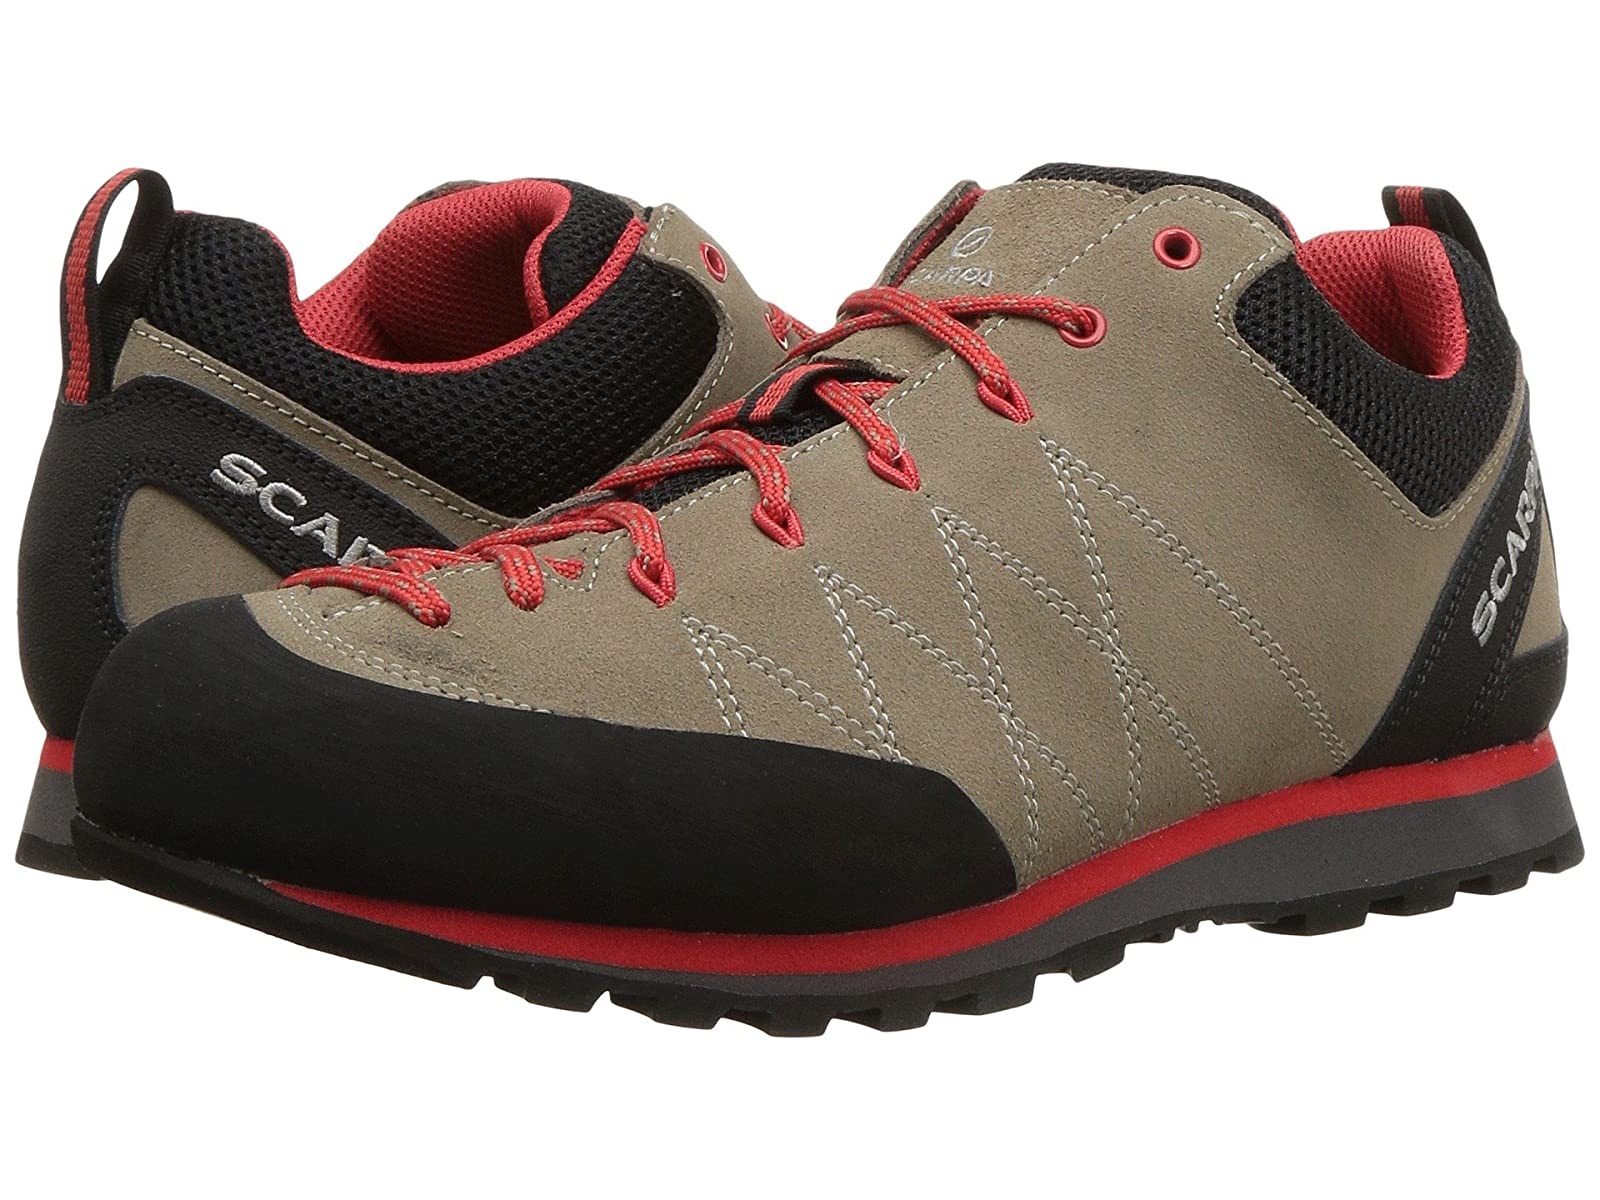 Scarpa CruxAtmospheric grades have affordable shoes